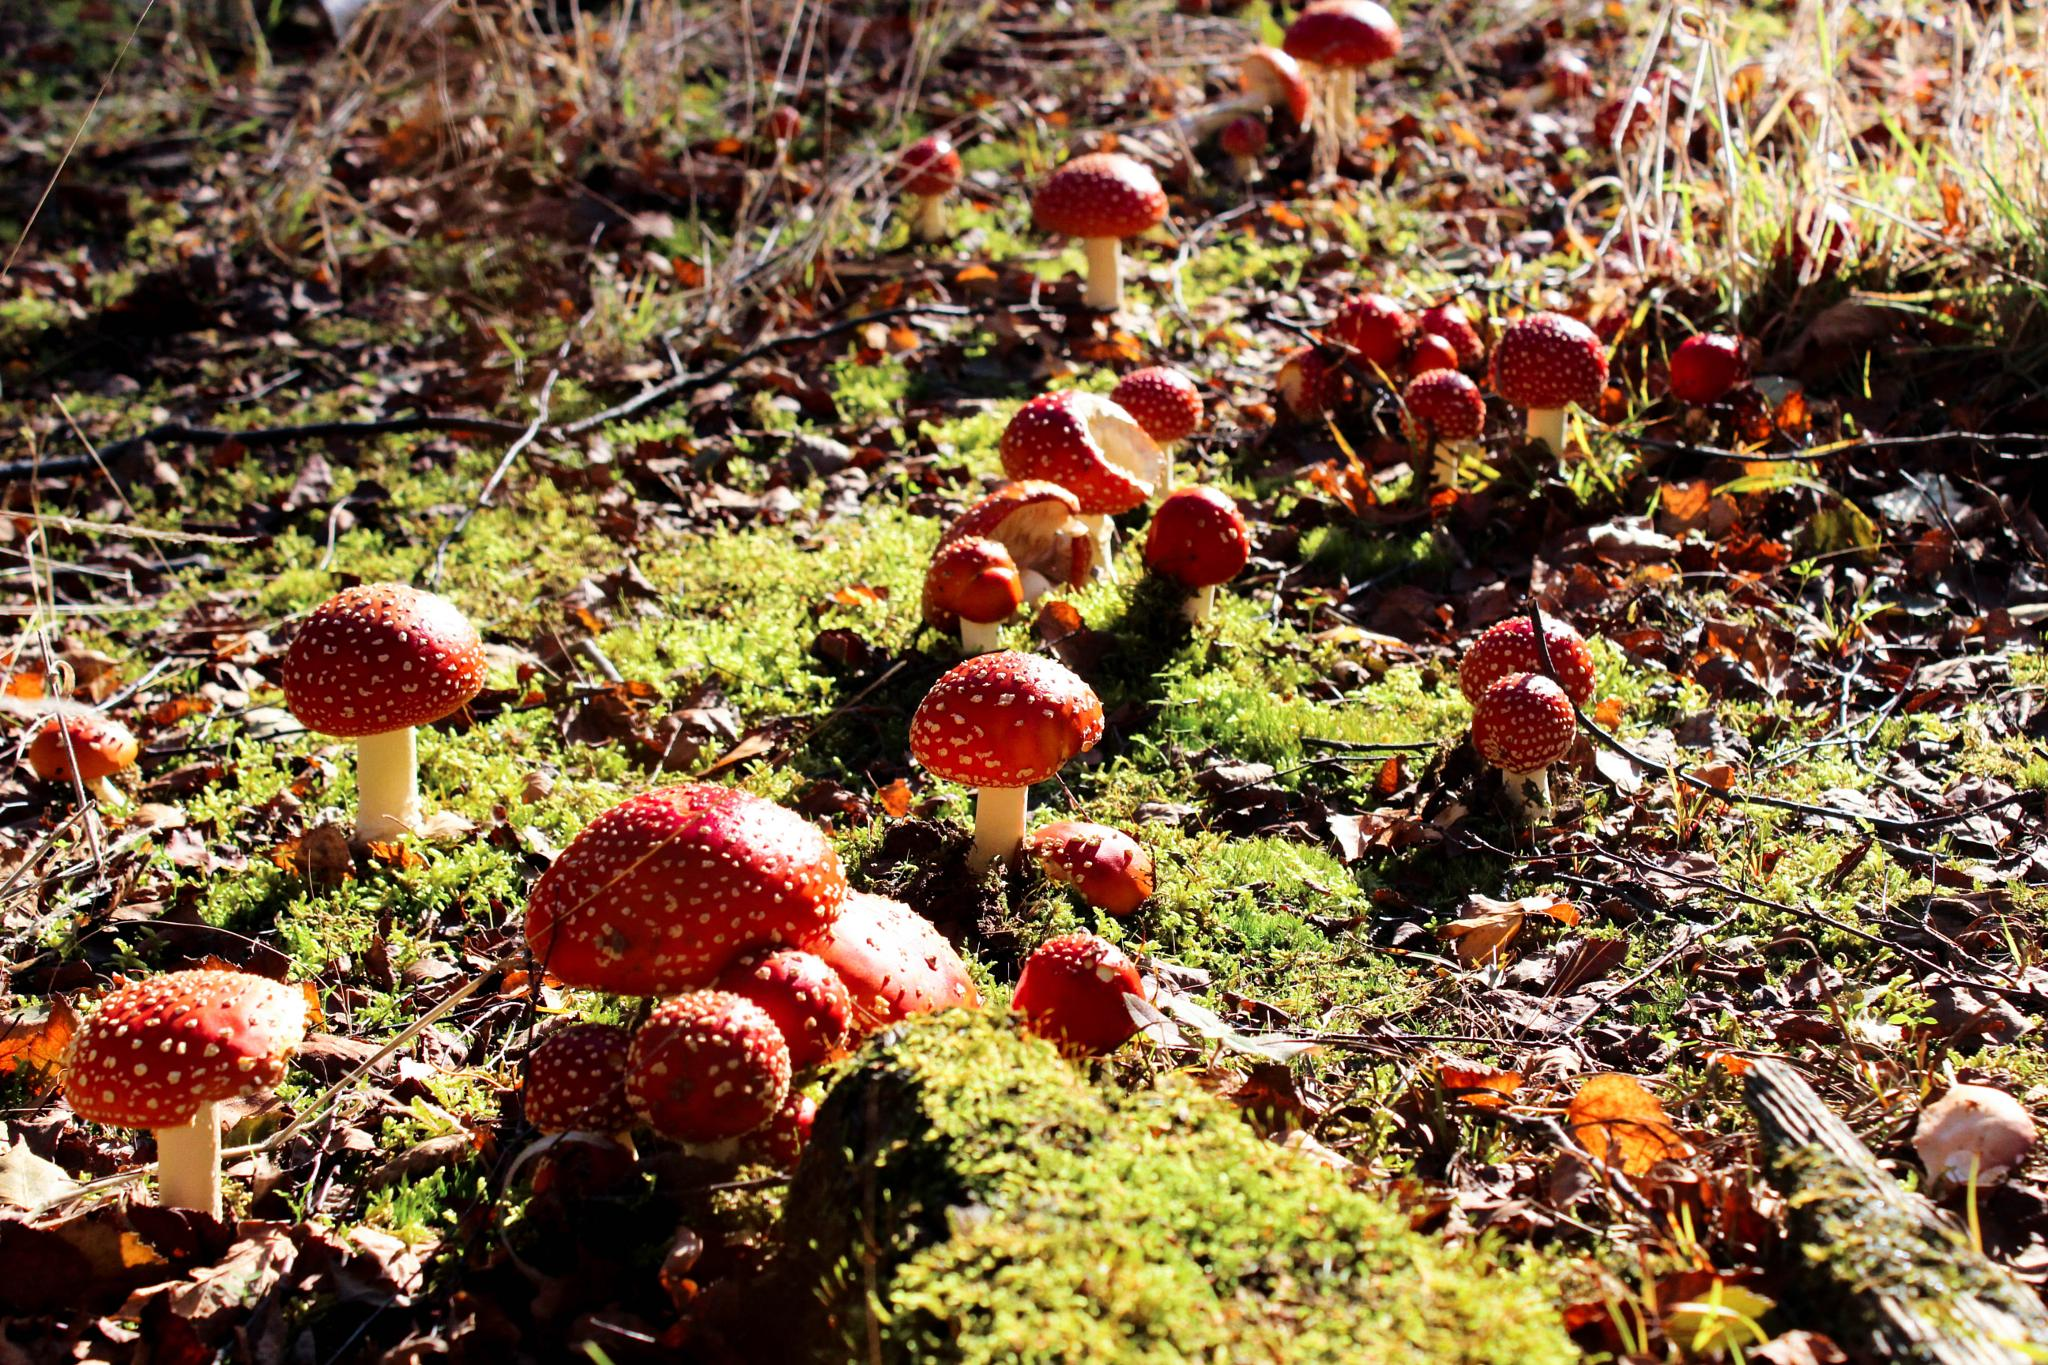 magical fungi in the woods by phil.newman.75